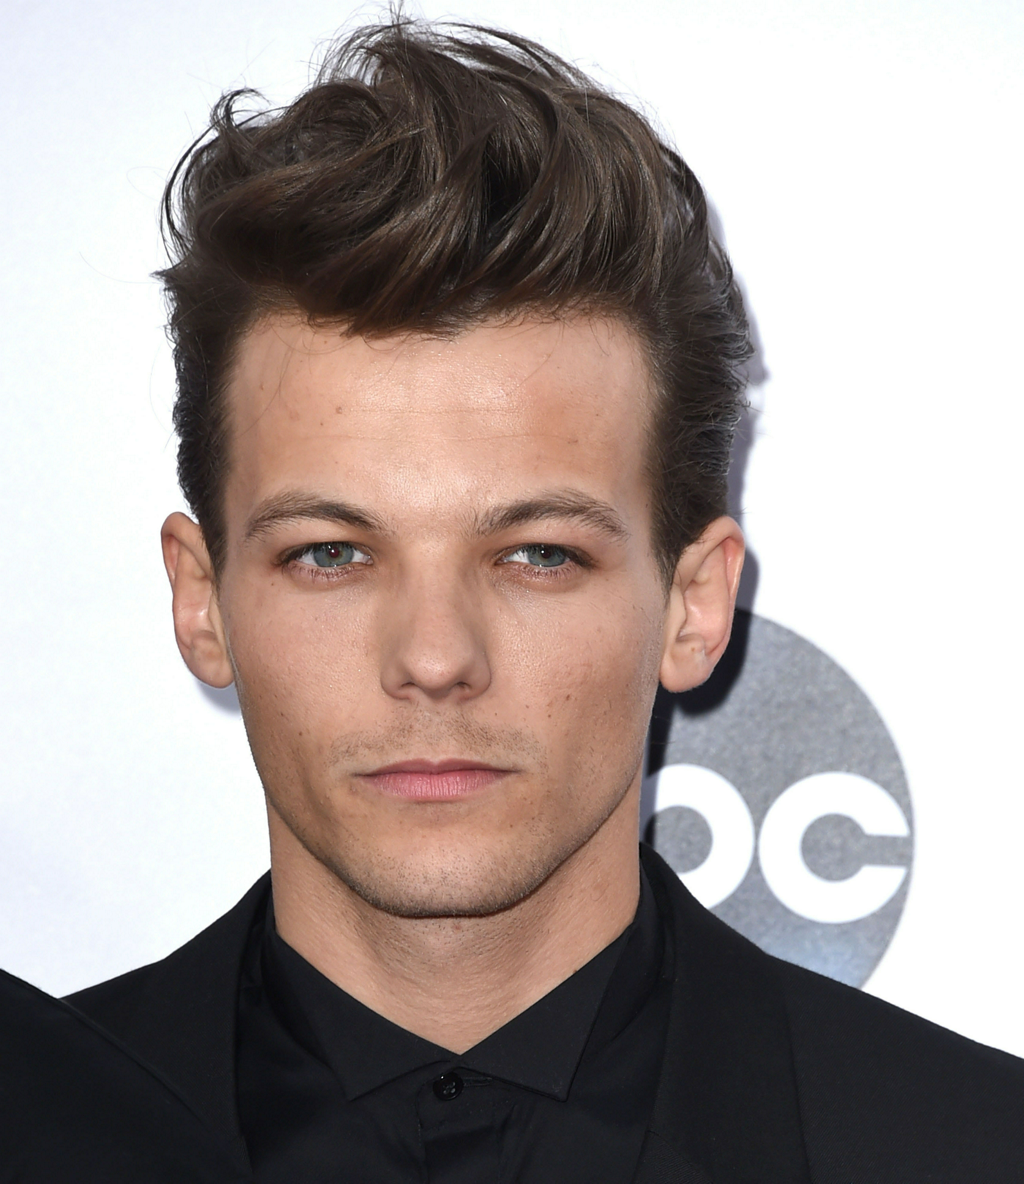 One Direction's Louis Got Into a Twitter Fight With Zayn's New Producer http://t.co/7Zszh4I9DT http://t.co/nfId6BgfNY